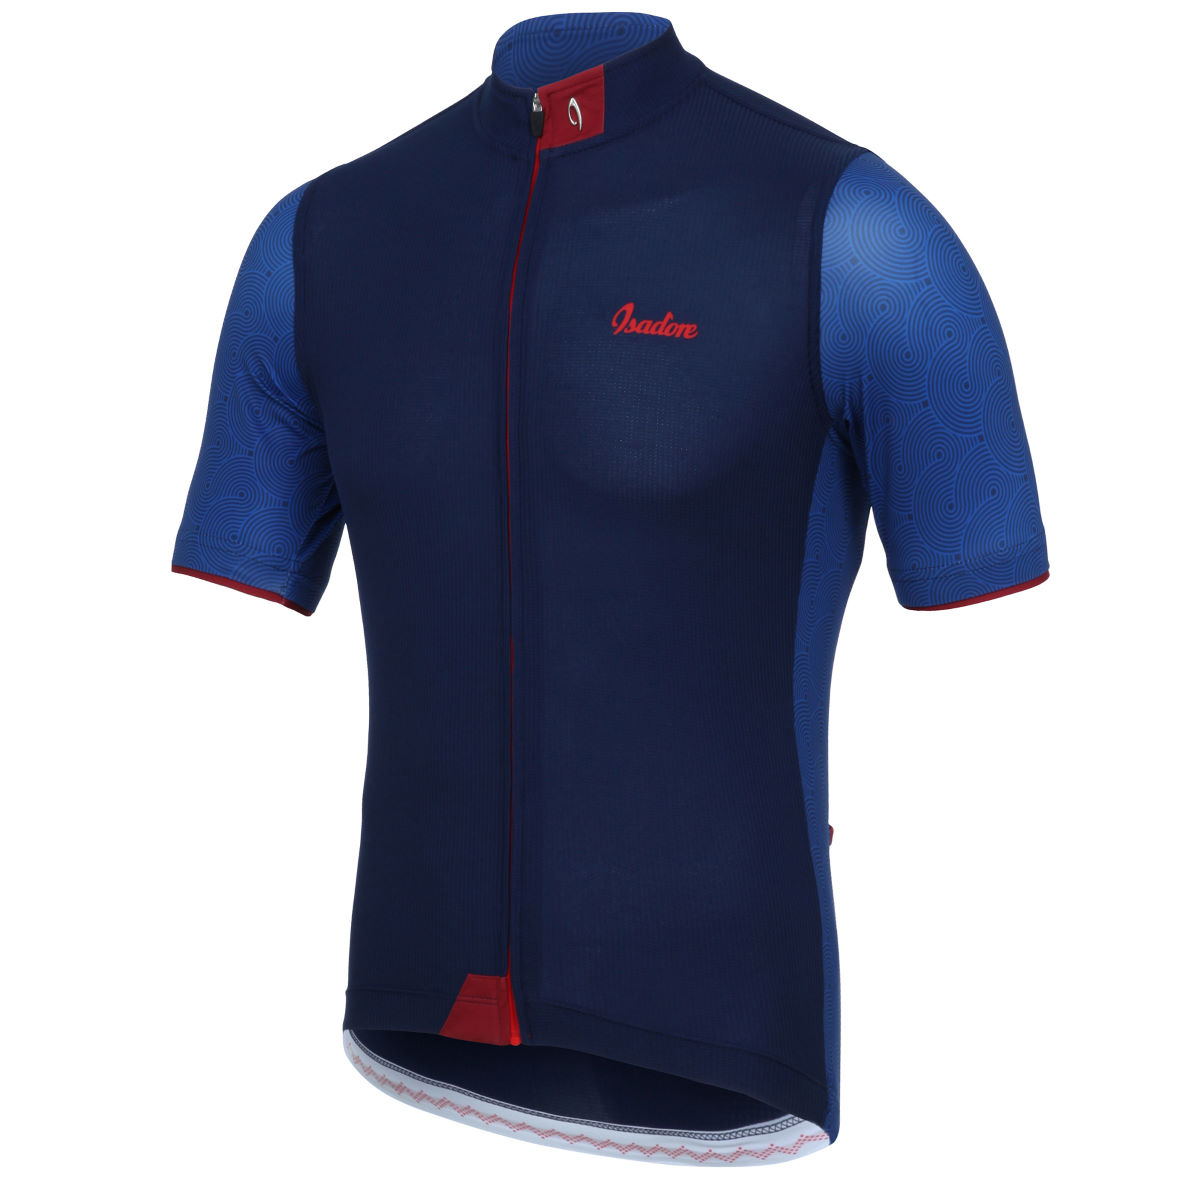 Maillot Isadore Albula Climbers - XL Blue/Red